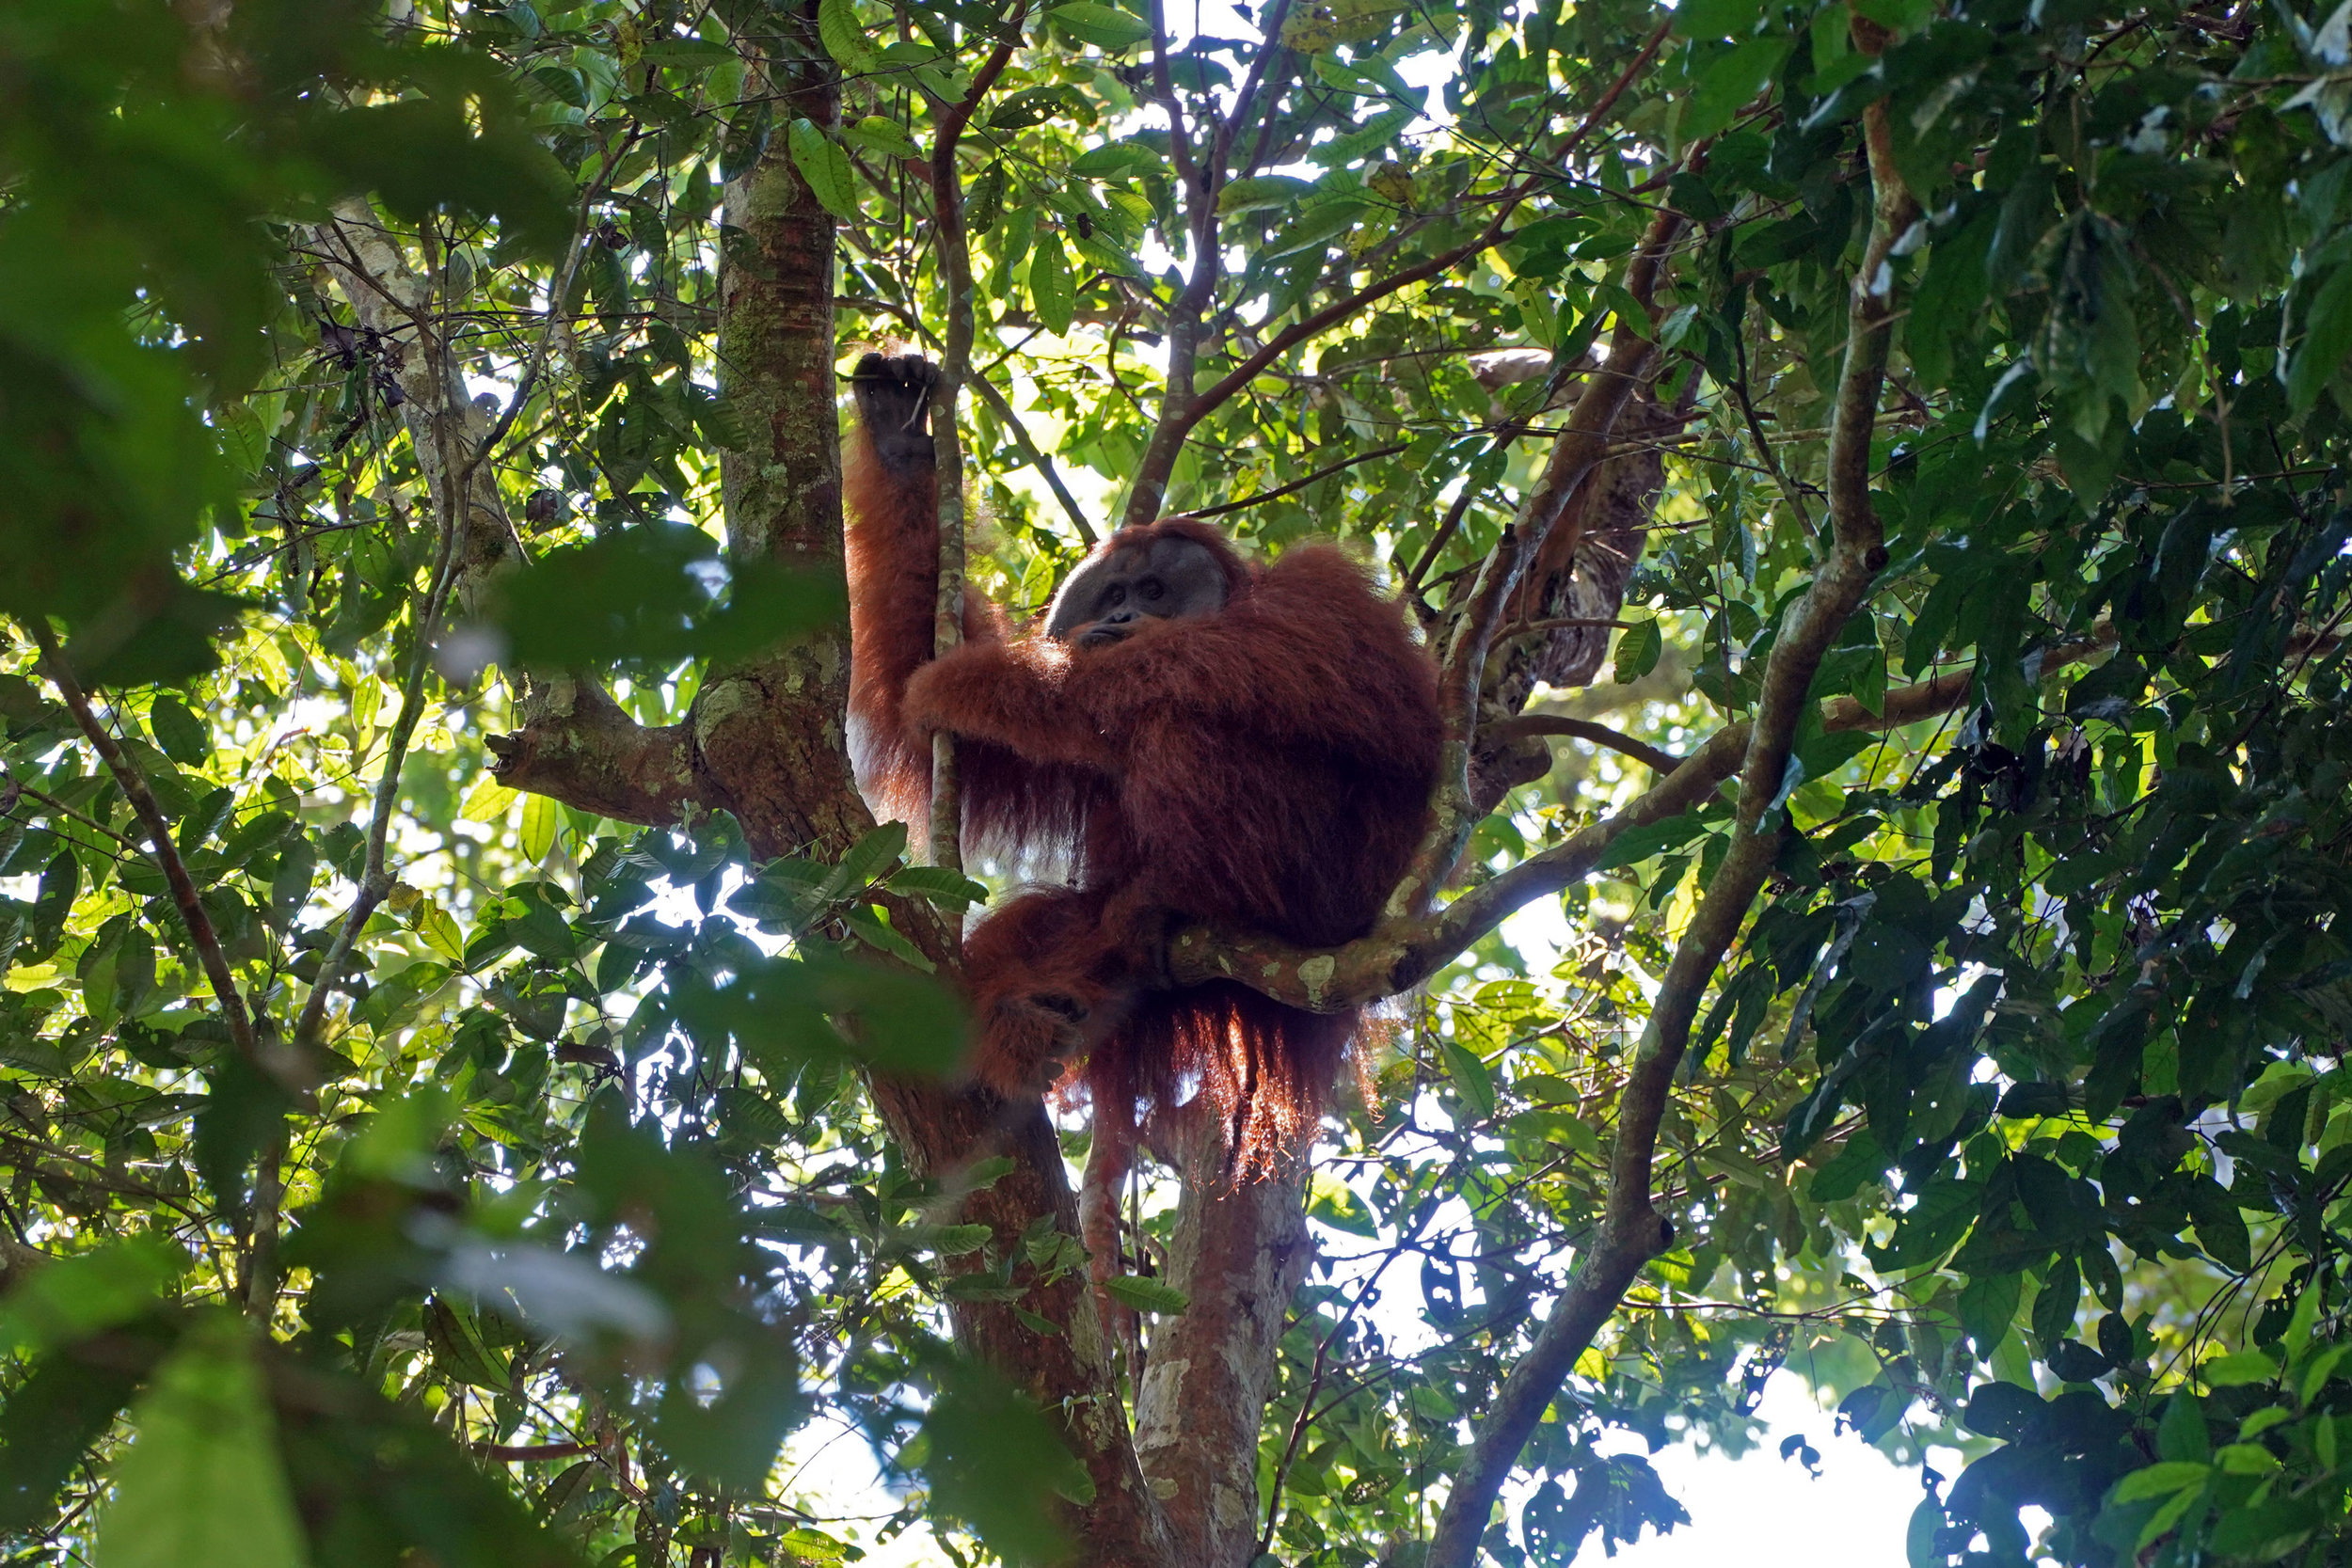 A wild male orangutan looks on from his tree-top home in Gunung Leuser National Park, Sumatra, Indonesia.